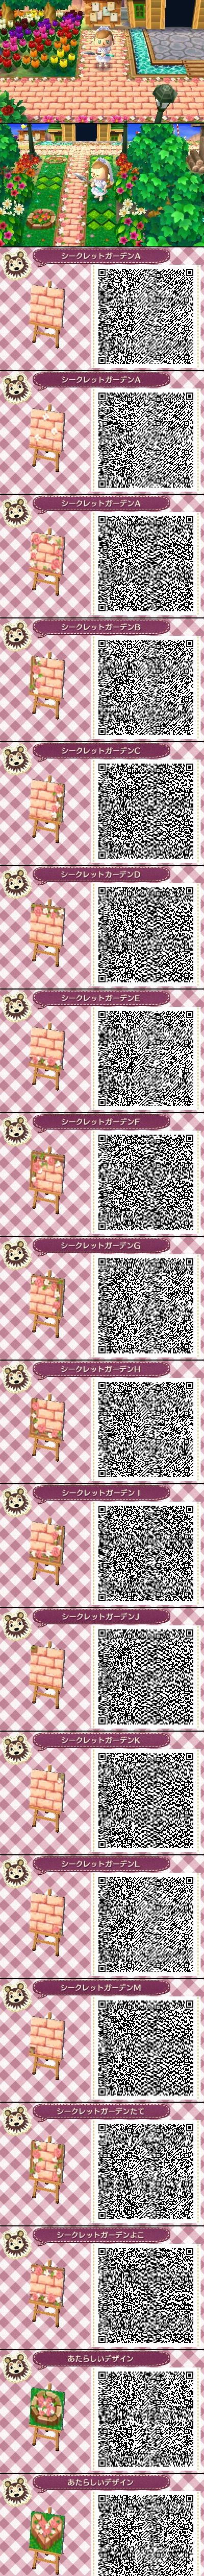 Animal Crossing New Leaf QR codes Pink stone Path (click through for source and full images)